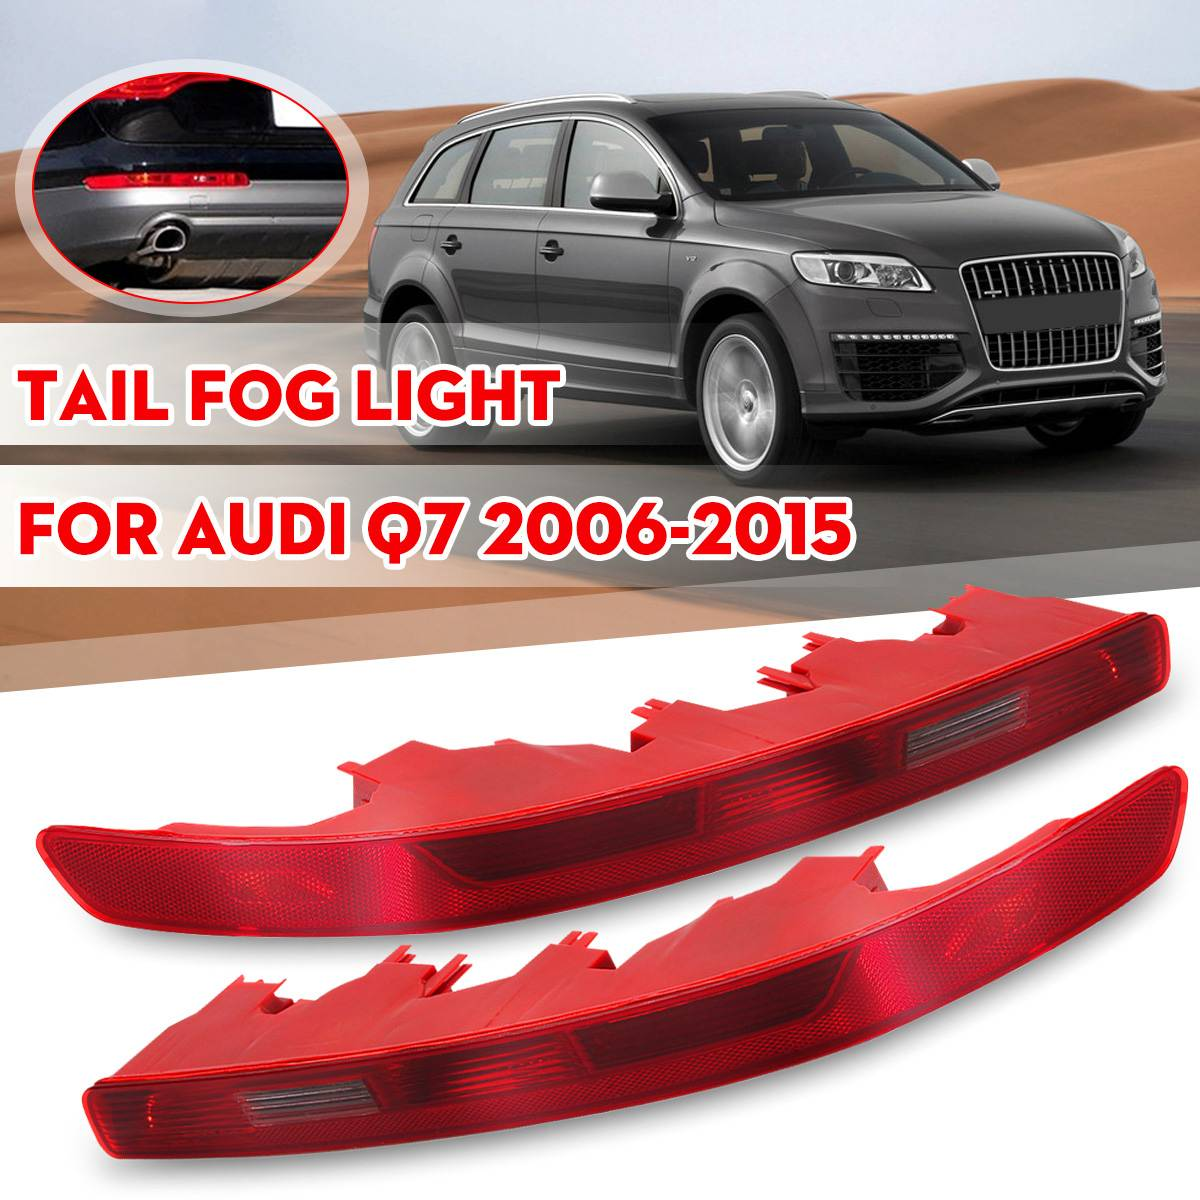 Car Left Right Side Bumper Rear Tail Light Lower Bumper Taillight Signal Lamp For Audi Q7 2006-2015 Car Light Assembly Red